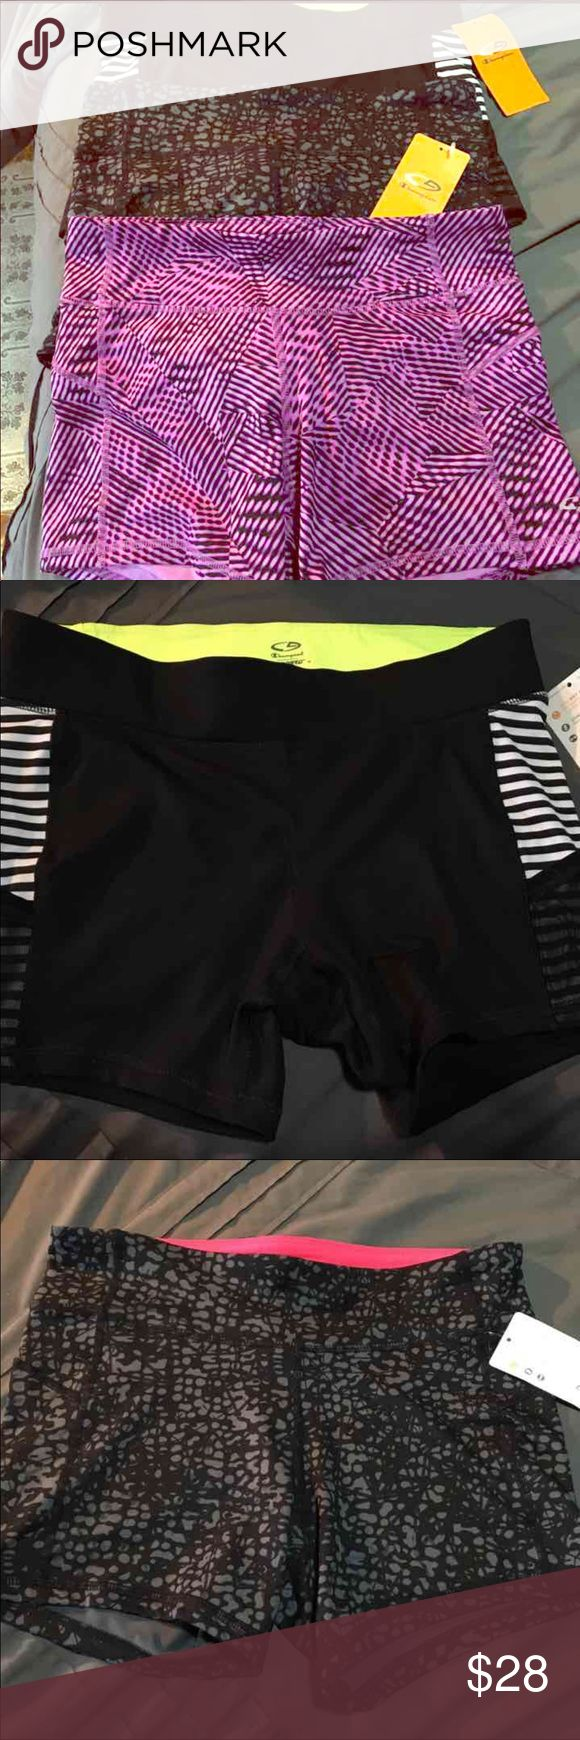 New! Woman's Workout Shorts Brand New! (Purple shorts do not have tag, but are new. Never worn).  Bundle of 3 workout shorts for $24! Great deal :) Champion Shorts